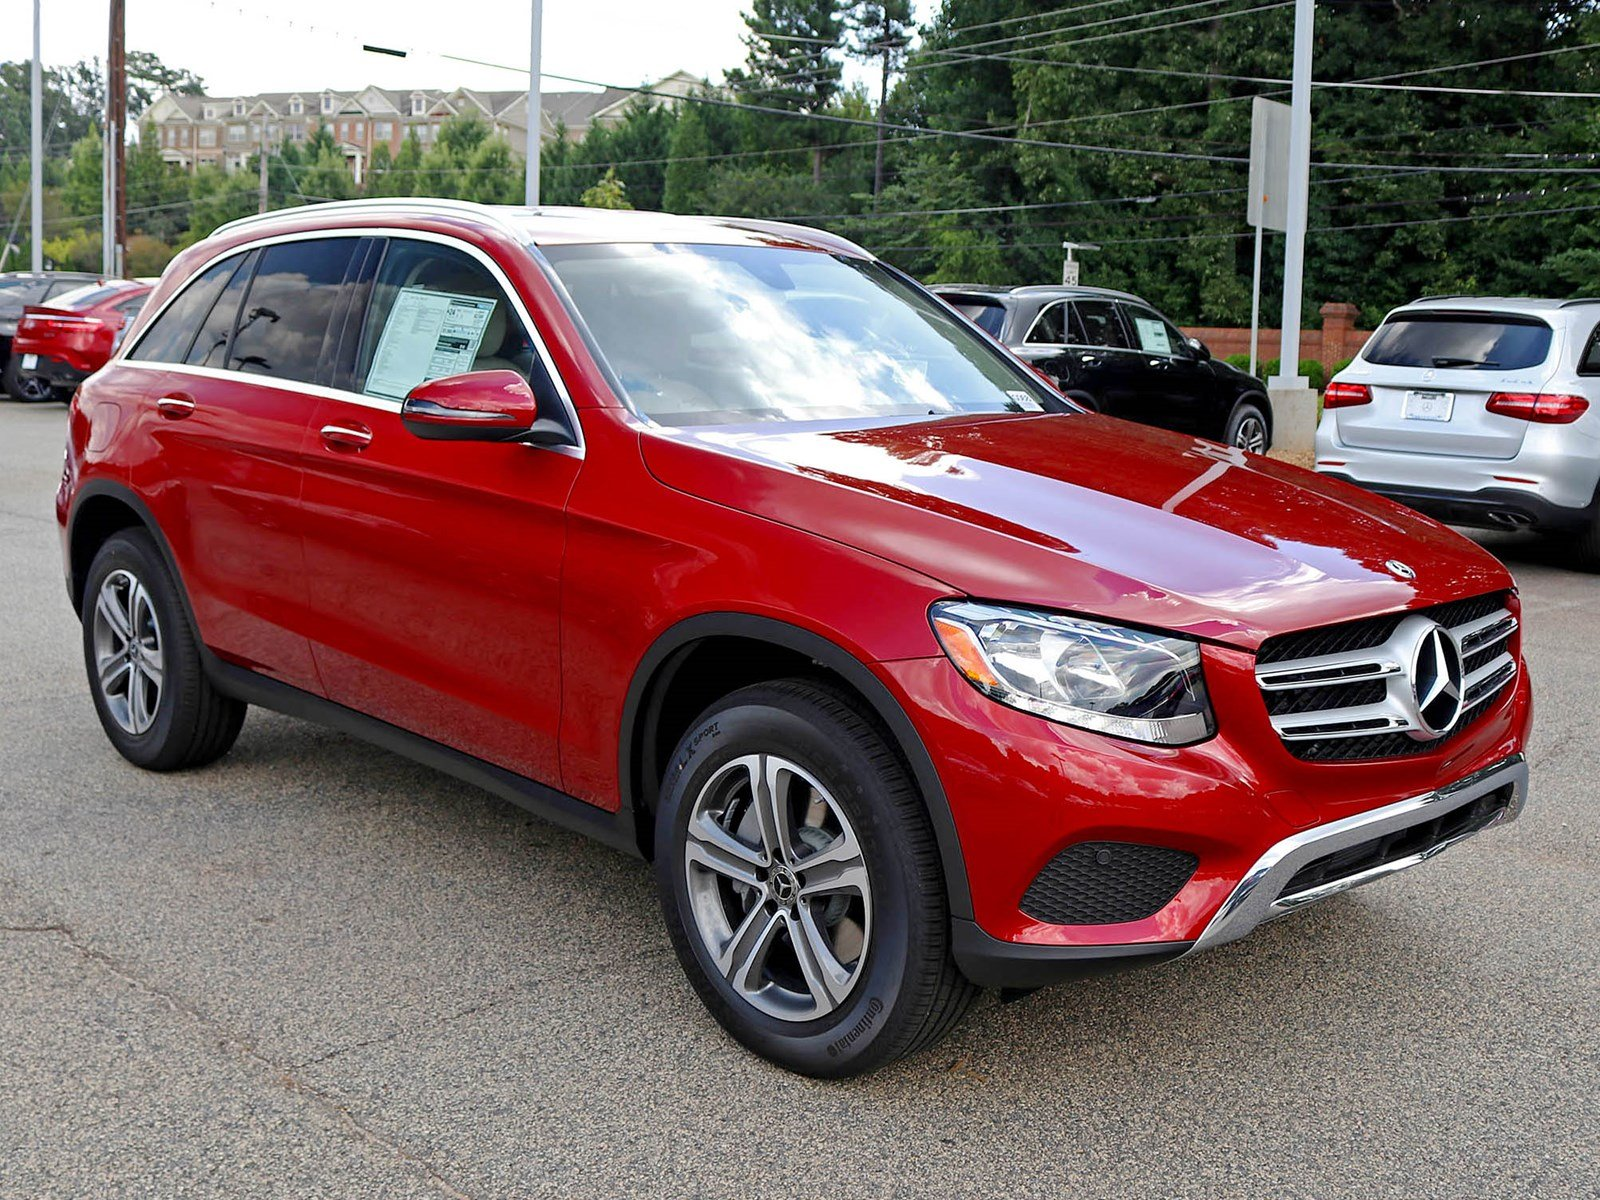 New 2019 Mercedes Benz GLC GLC 300 SUV in Atlanta G068